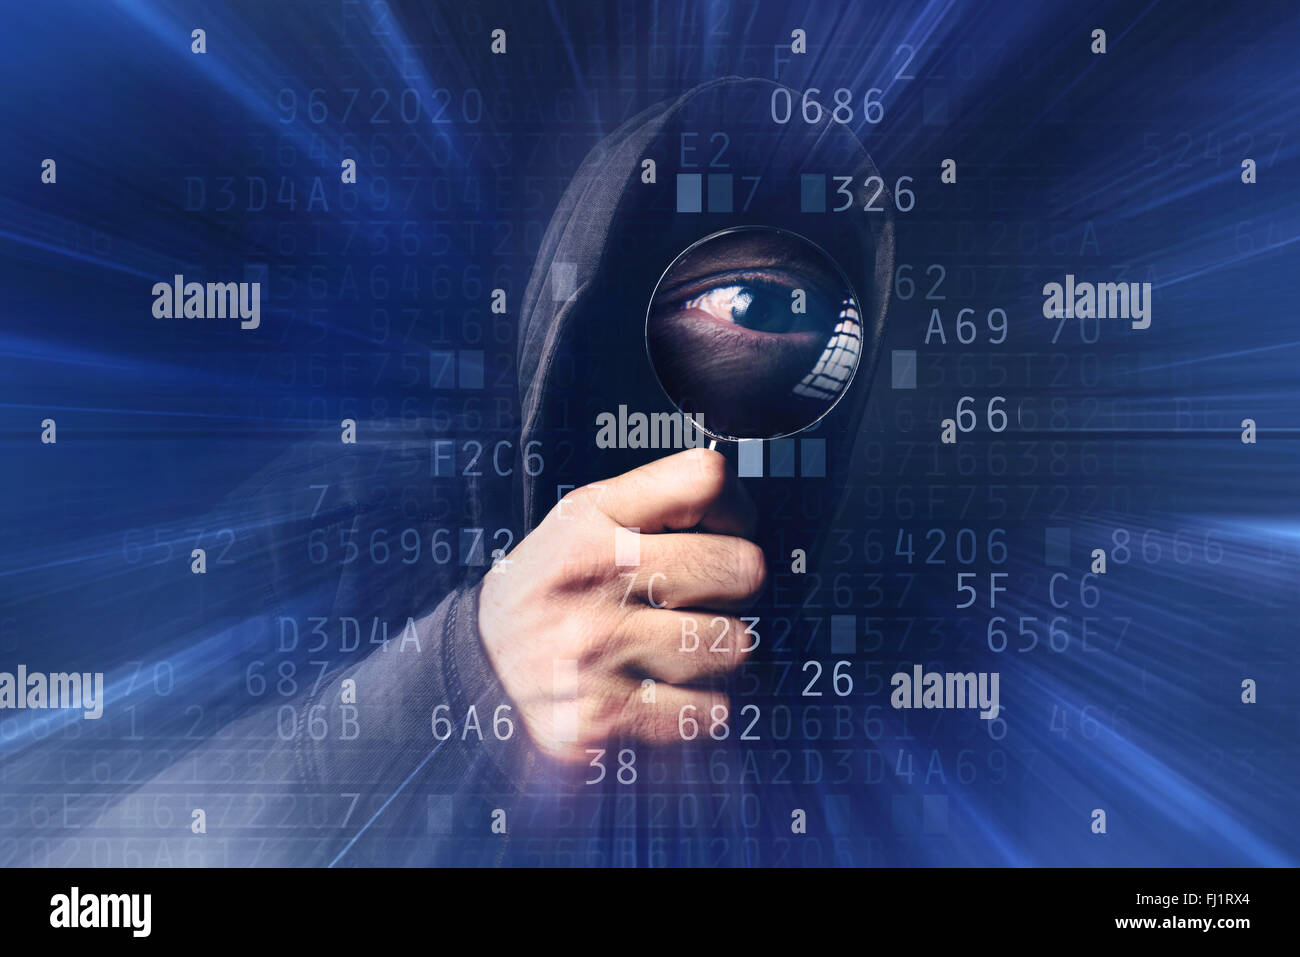 Spyware virus software, bizzare spooky hooded hacker with magnifying glass analyzing computer hexadecimal code, - Stock Image